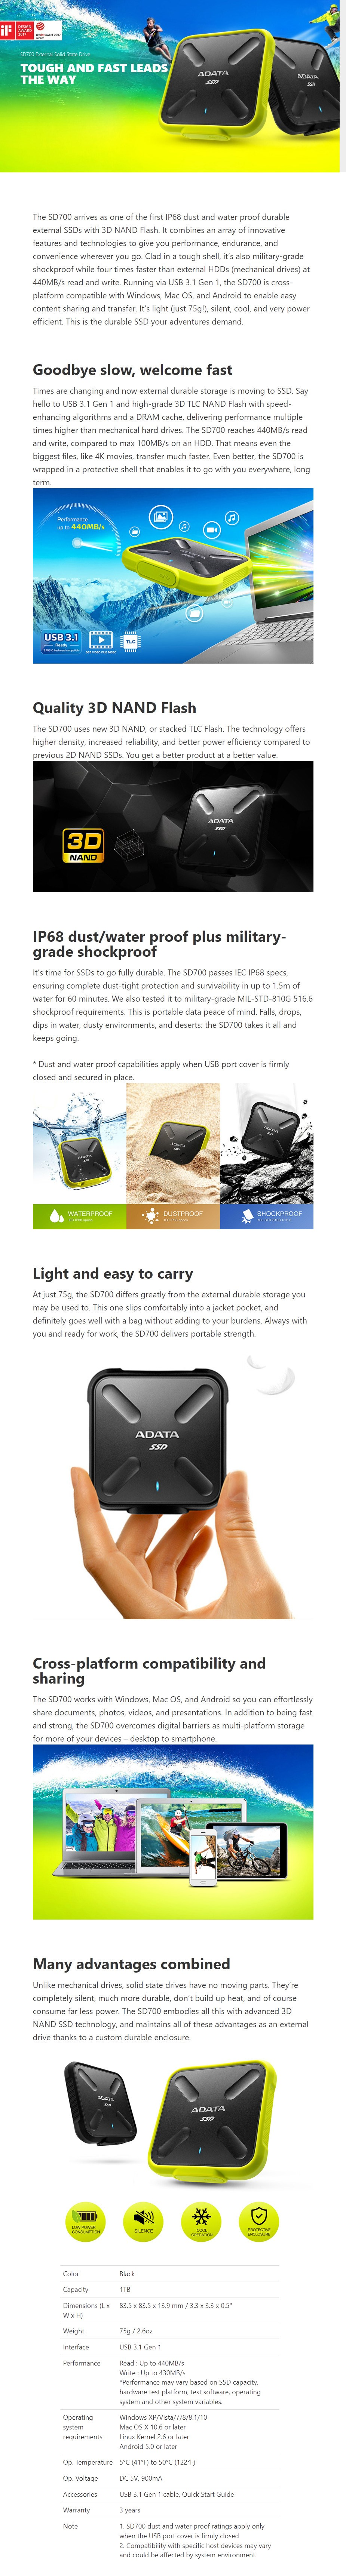 Adata SD700 1TB USB 3.1 Portable External Rugged SSD Hard Drive - Black - Overview 1